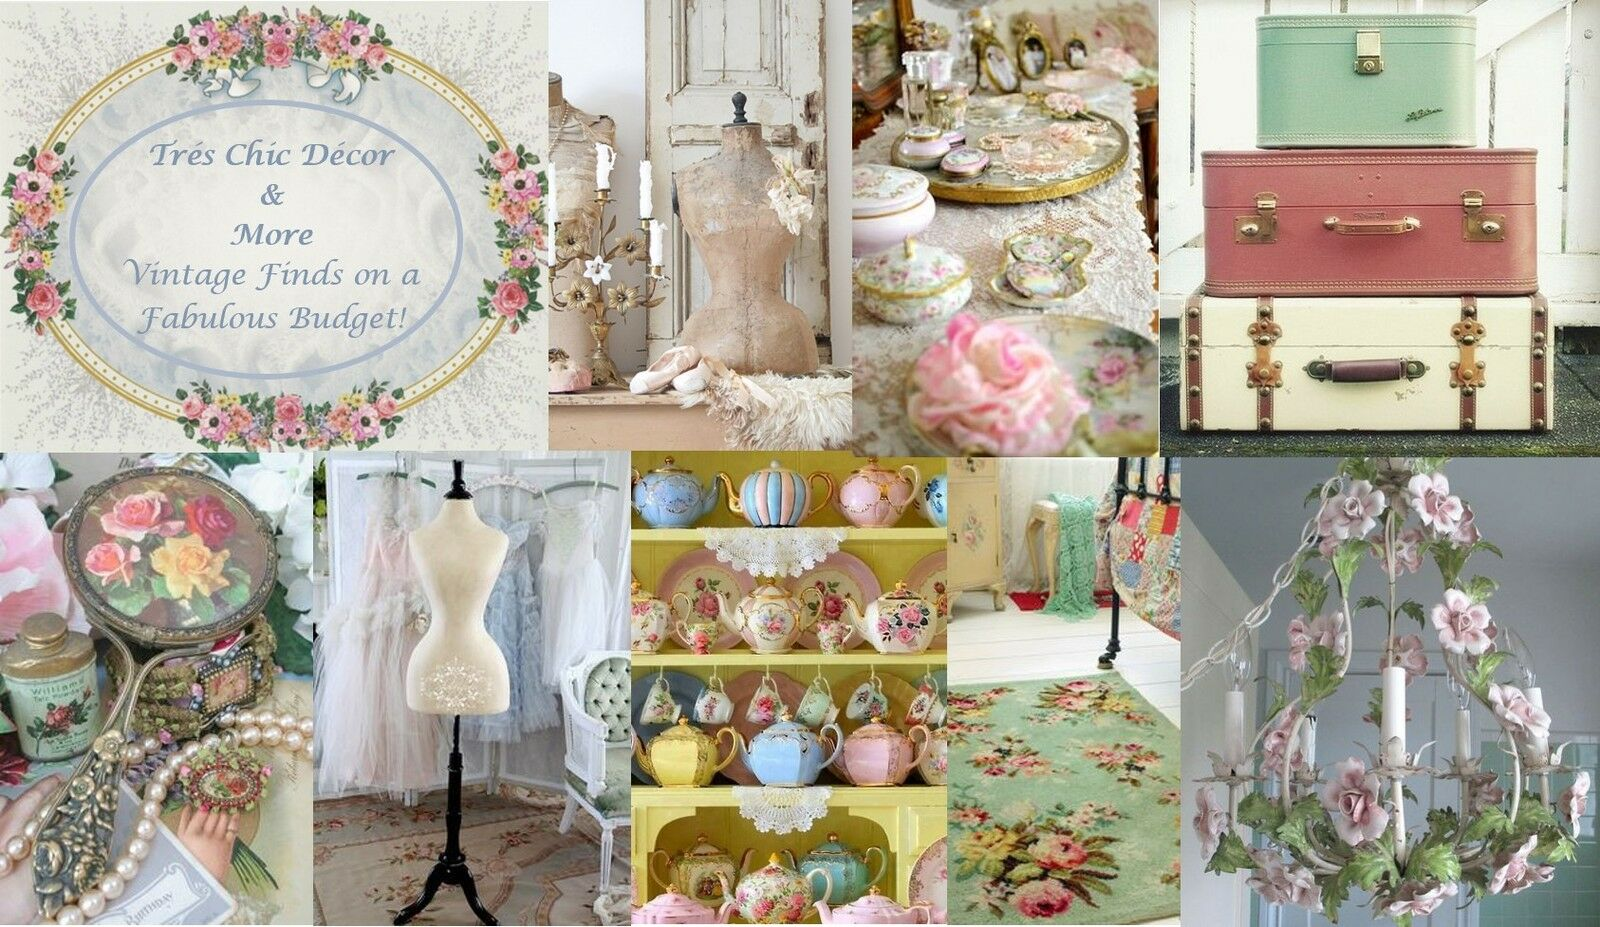 Tres Chic Decor and More